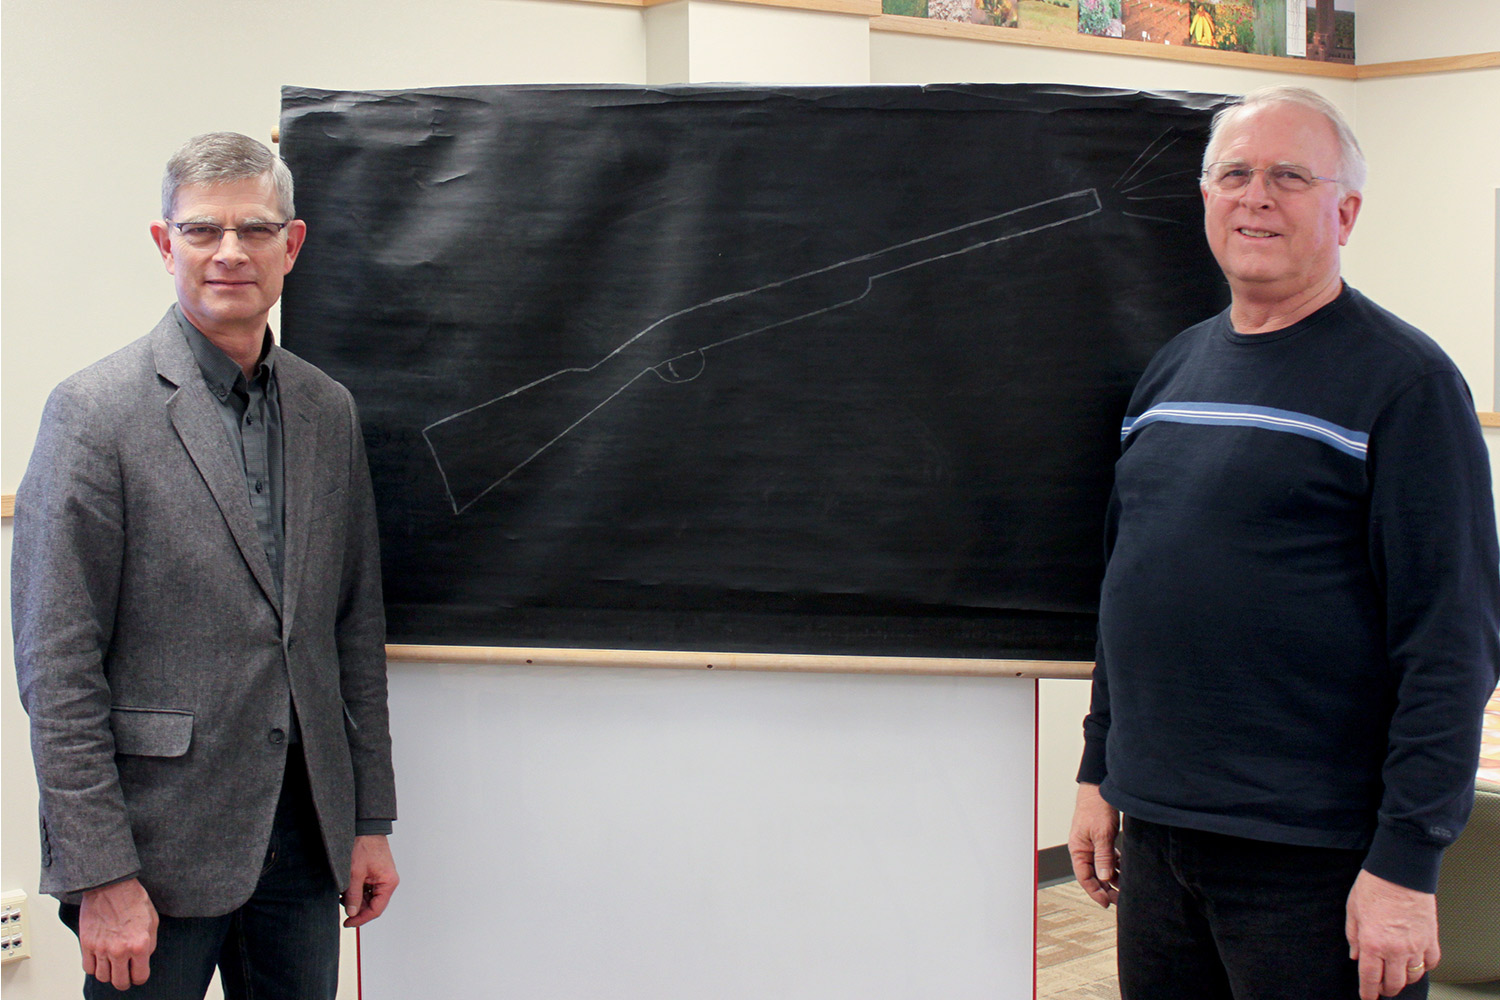 Thomas and Birdie Goodding's grandsons, Gary Goodding (left) and Rich Goodding (right), pose in the newly remodeled Goodding Learning Center with the drawing Dr. Goodding used to announce class quizzes.